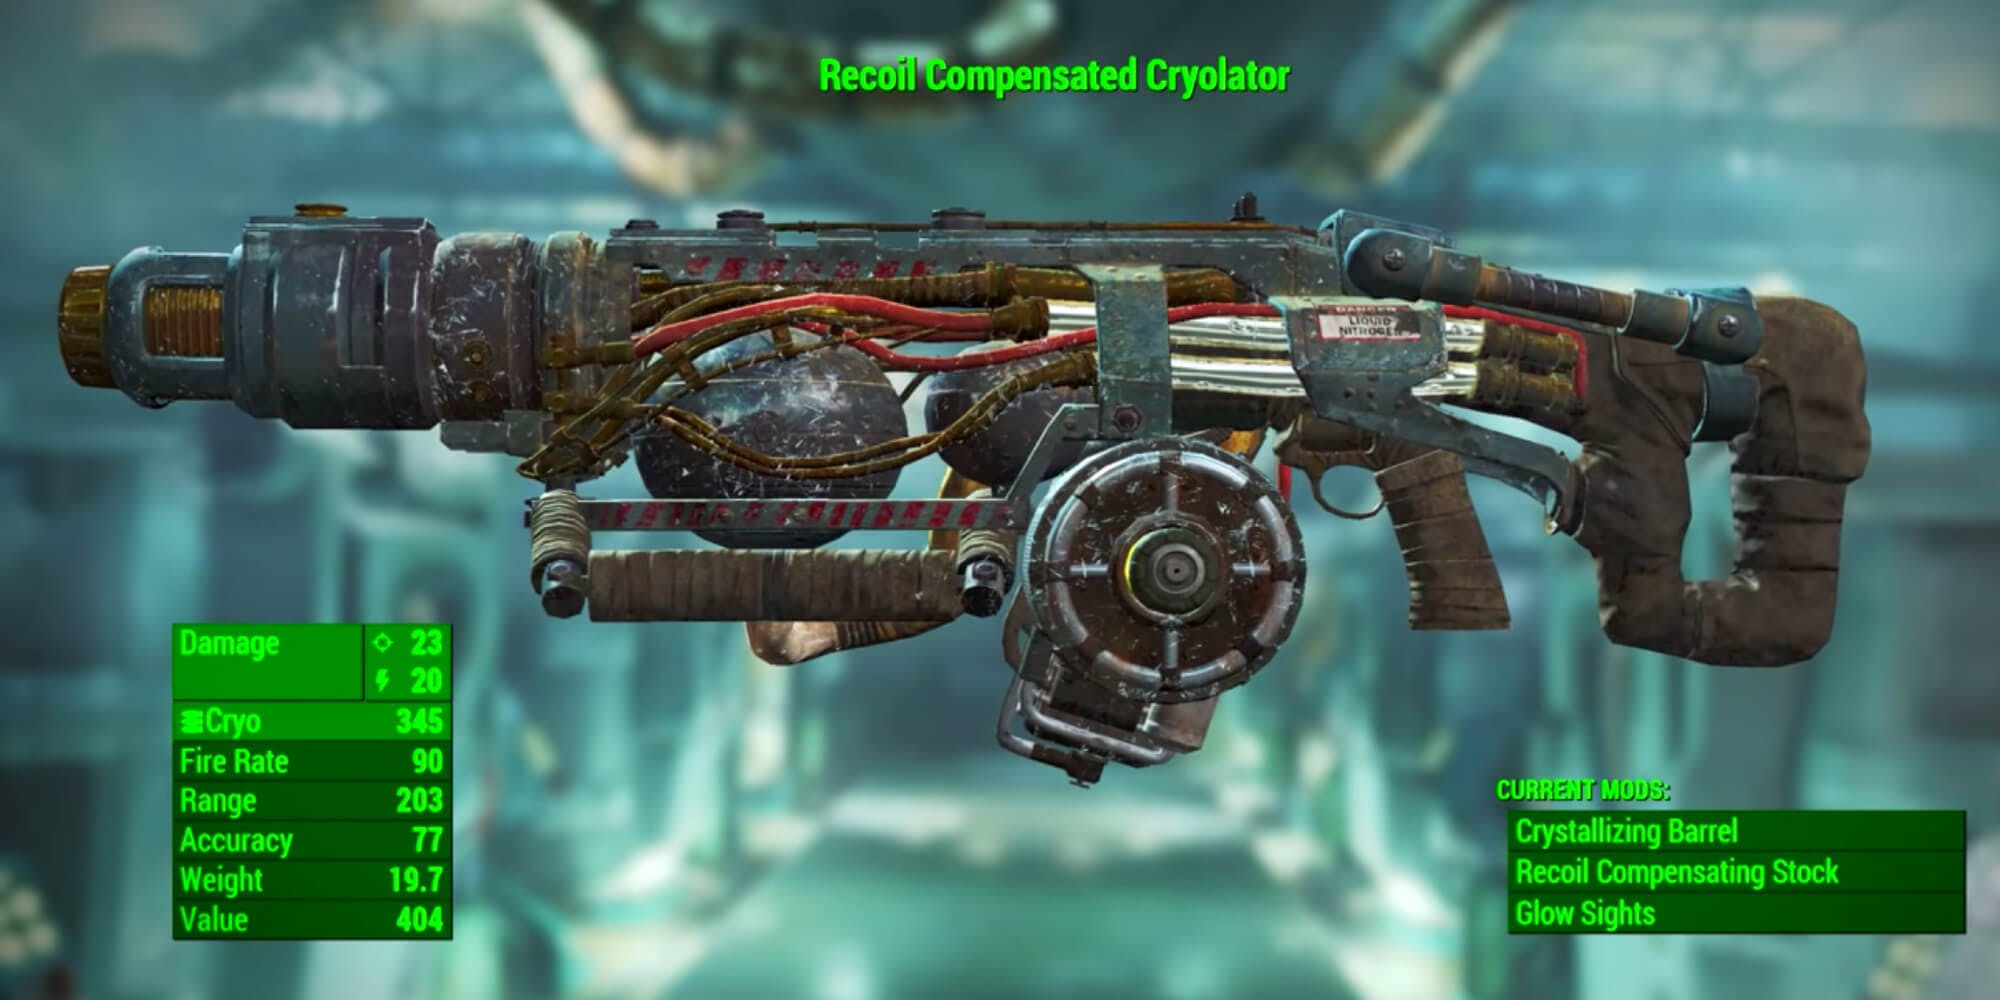 Fallout 4 weapons - Cryolator